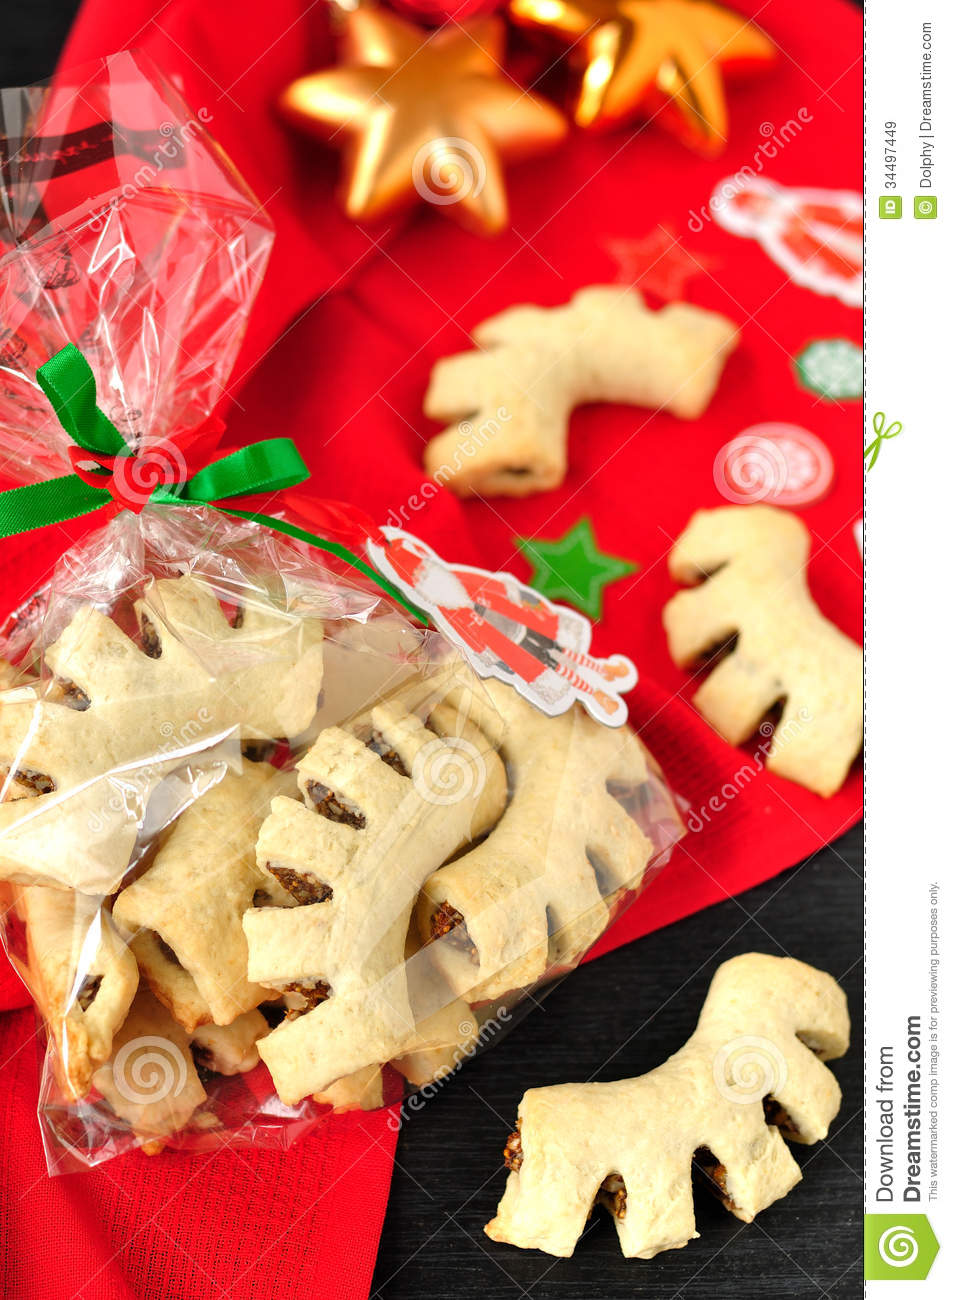 download cuddureddi sicilian christmas cookies stock image image of fruit biscuits 34497449